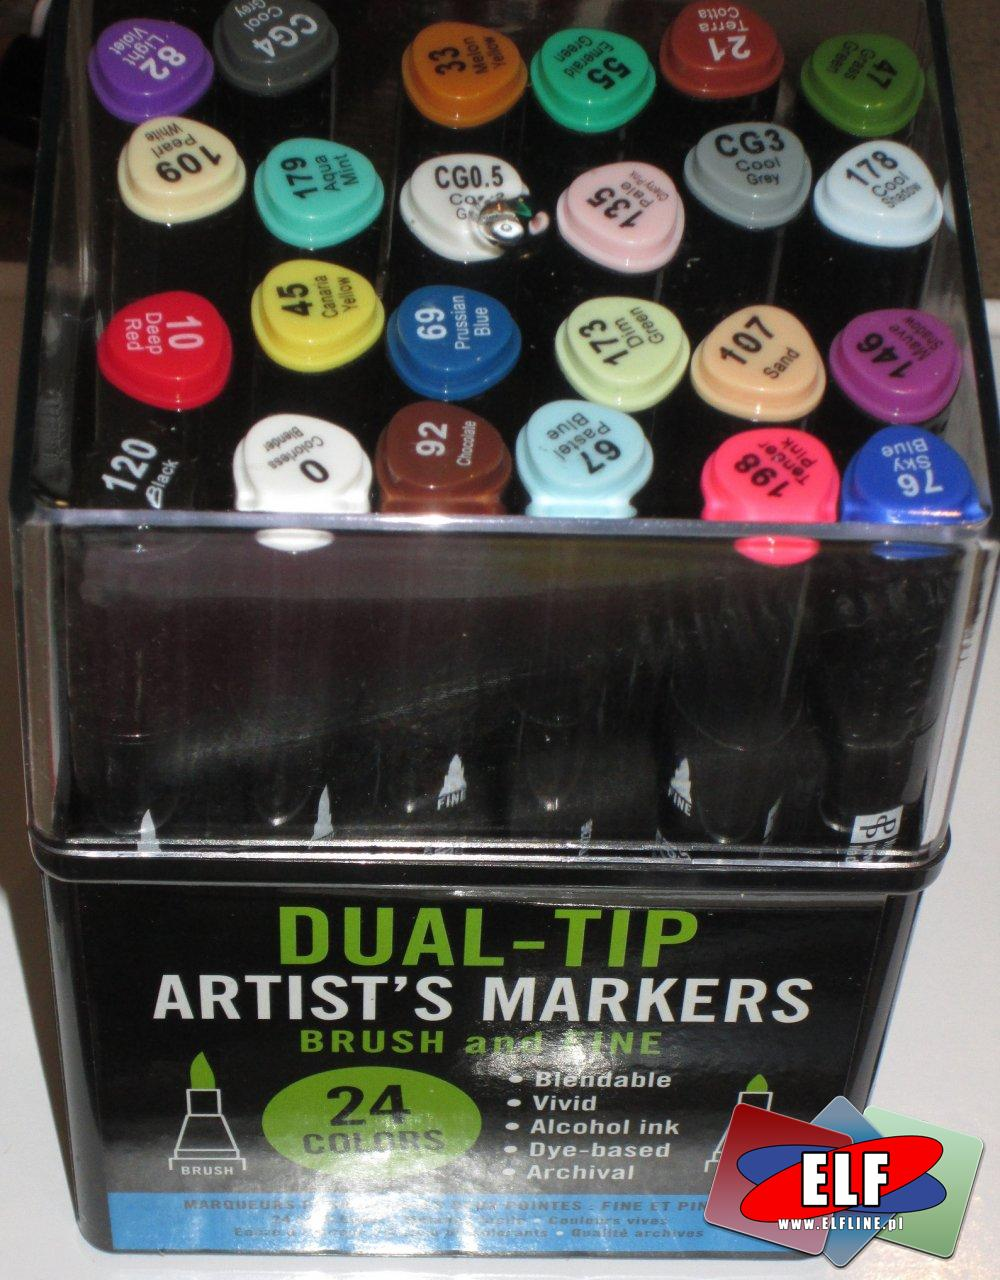 Brush and Tine, Marker, Flamaster artystyczny, Flamastry 24 kolory, Dual-Tip Artists Markers